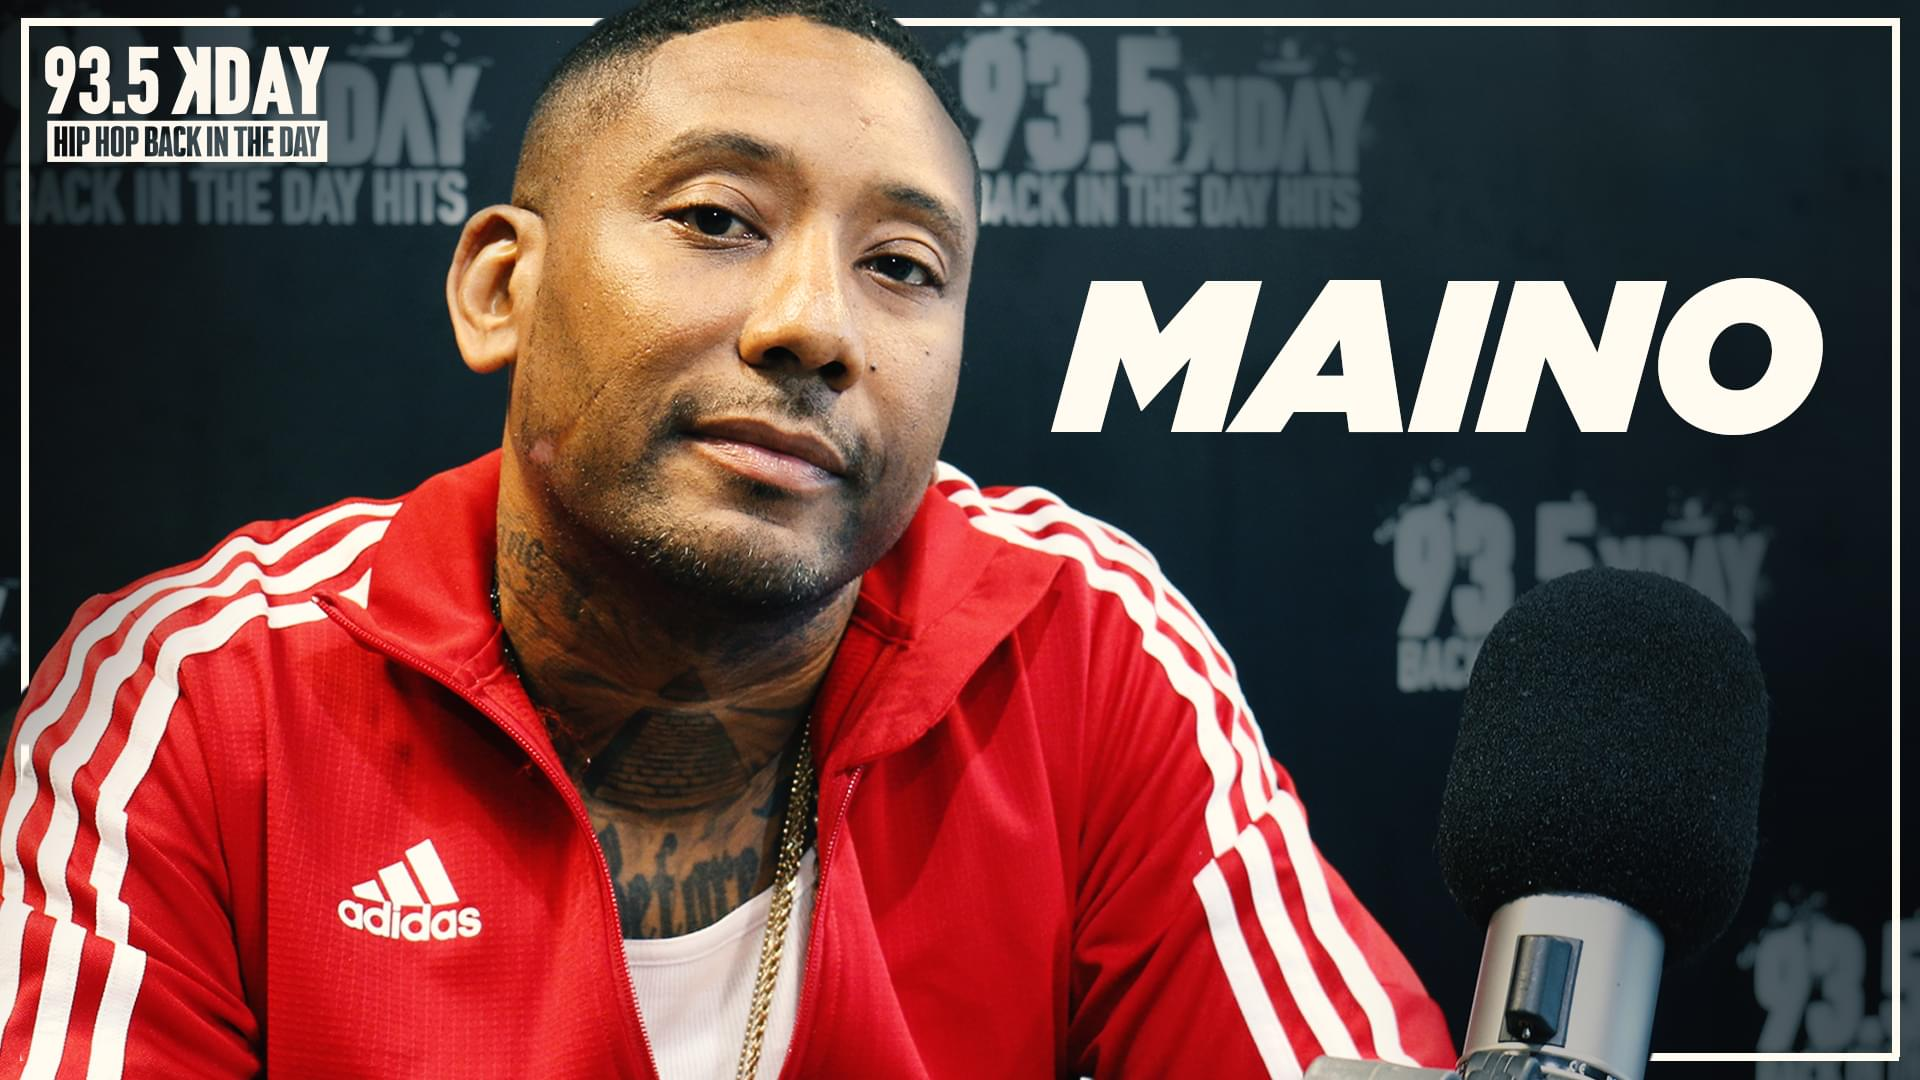 Maino Talks History w/ Birdman + Why He Didn't Watch His Love And Hip Hop Episodes